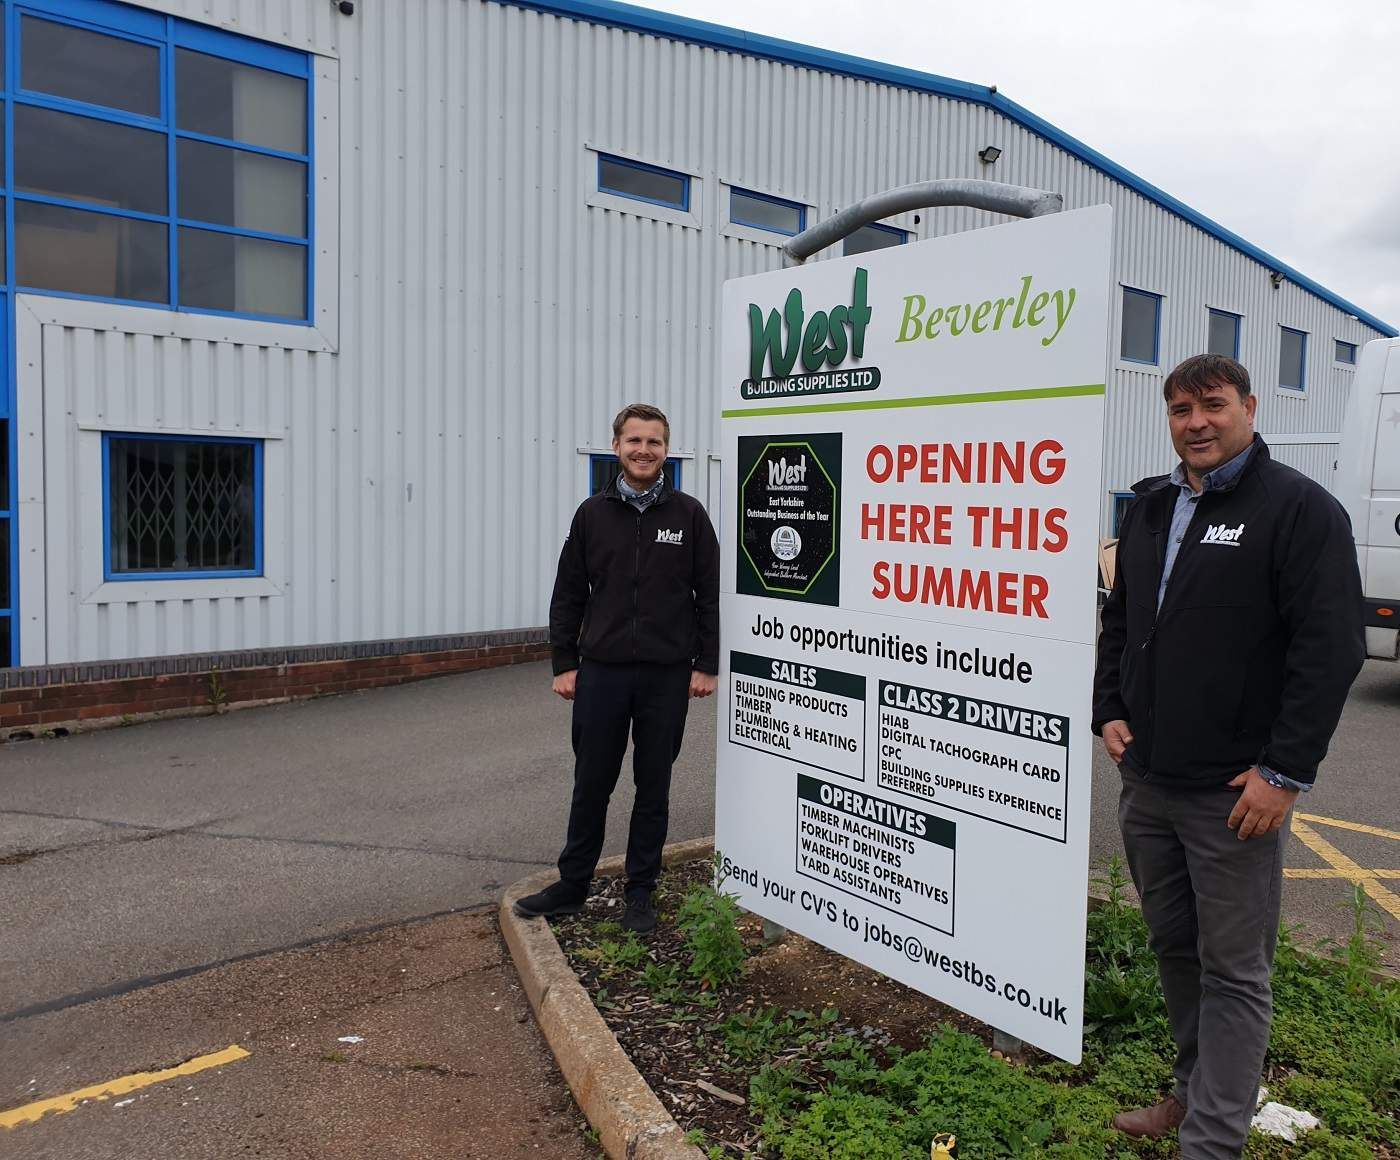 Ten new jobs created as West Building Supplies expands into Beverley